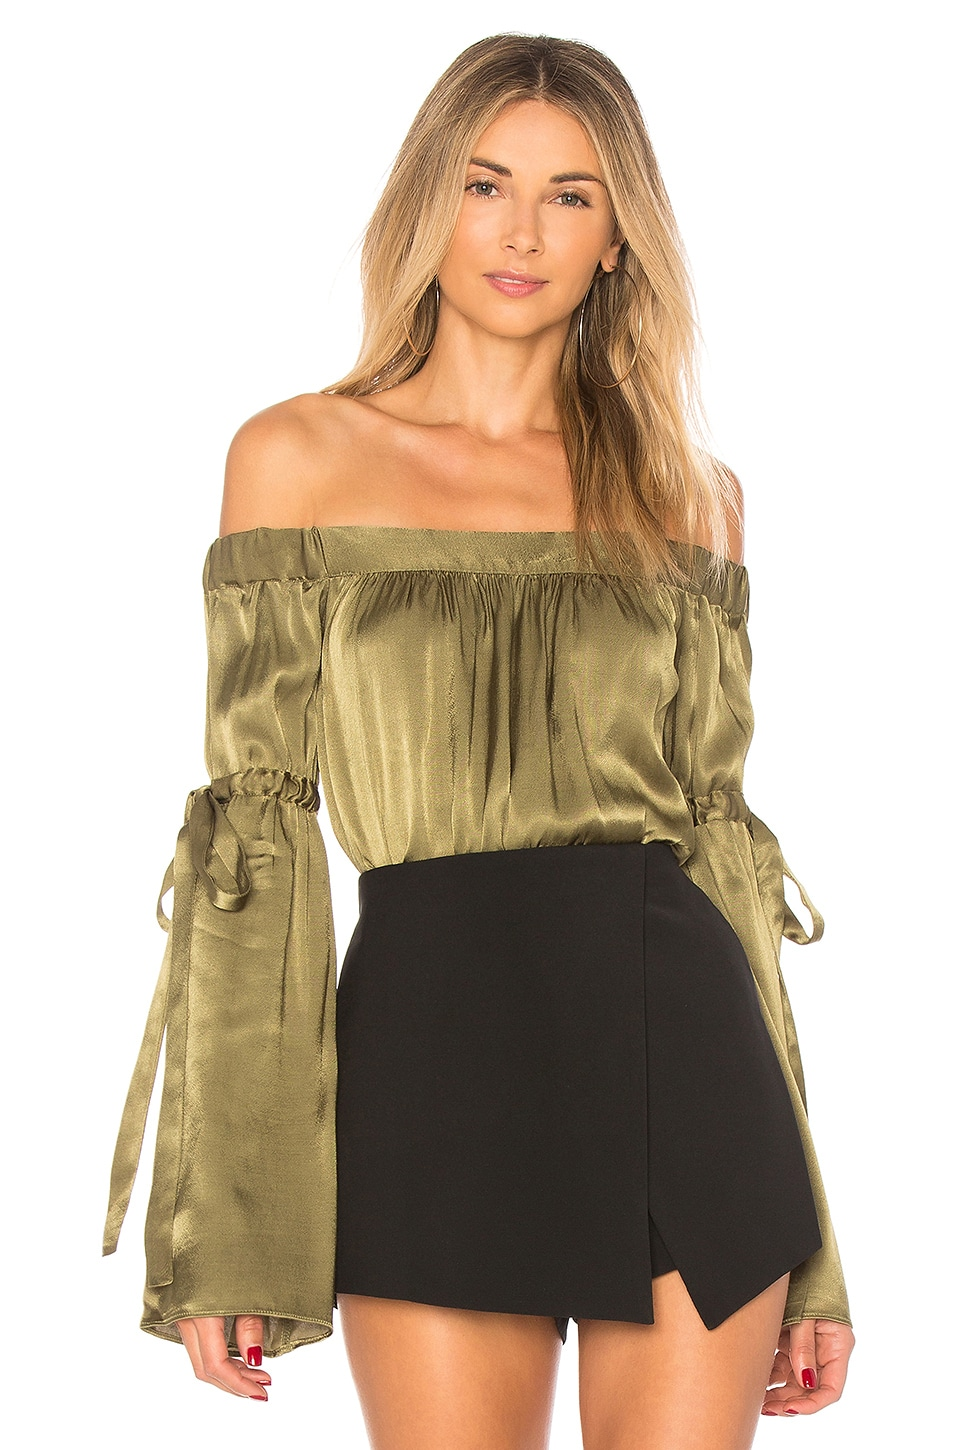 L'Academie The Delia Blouse in Olive